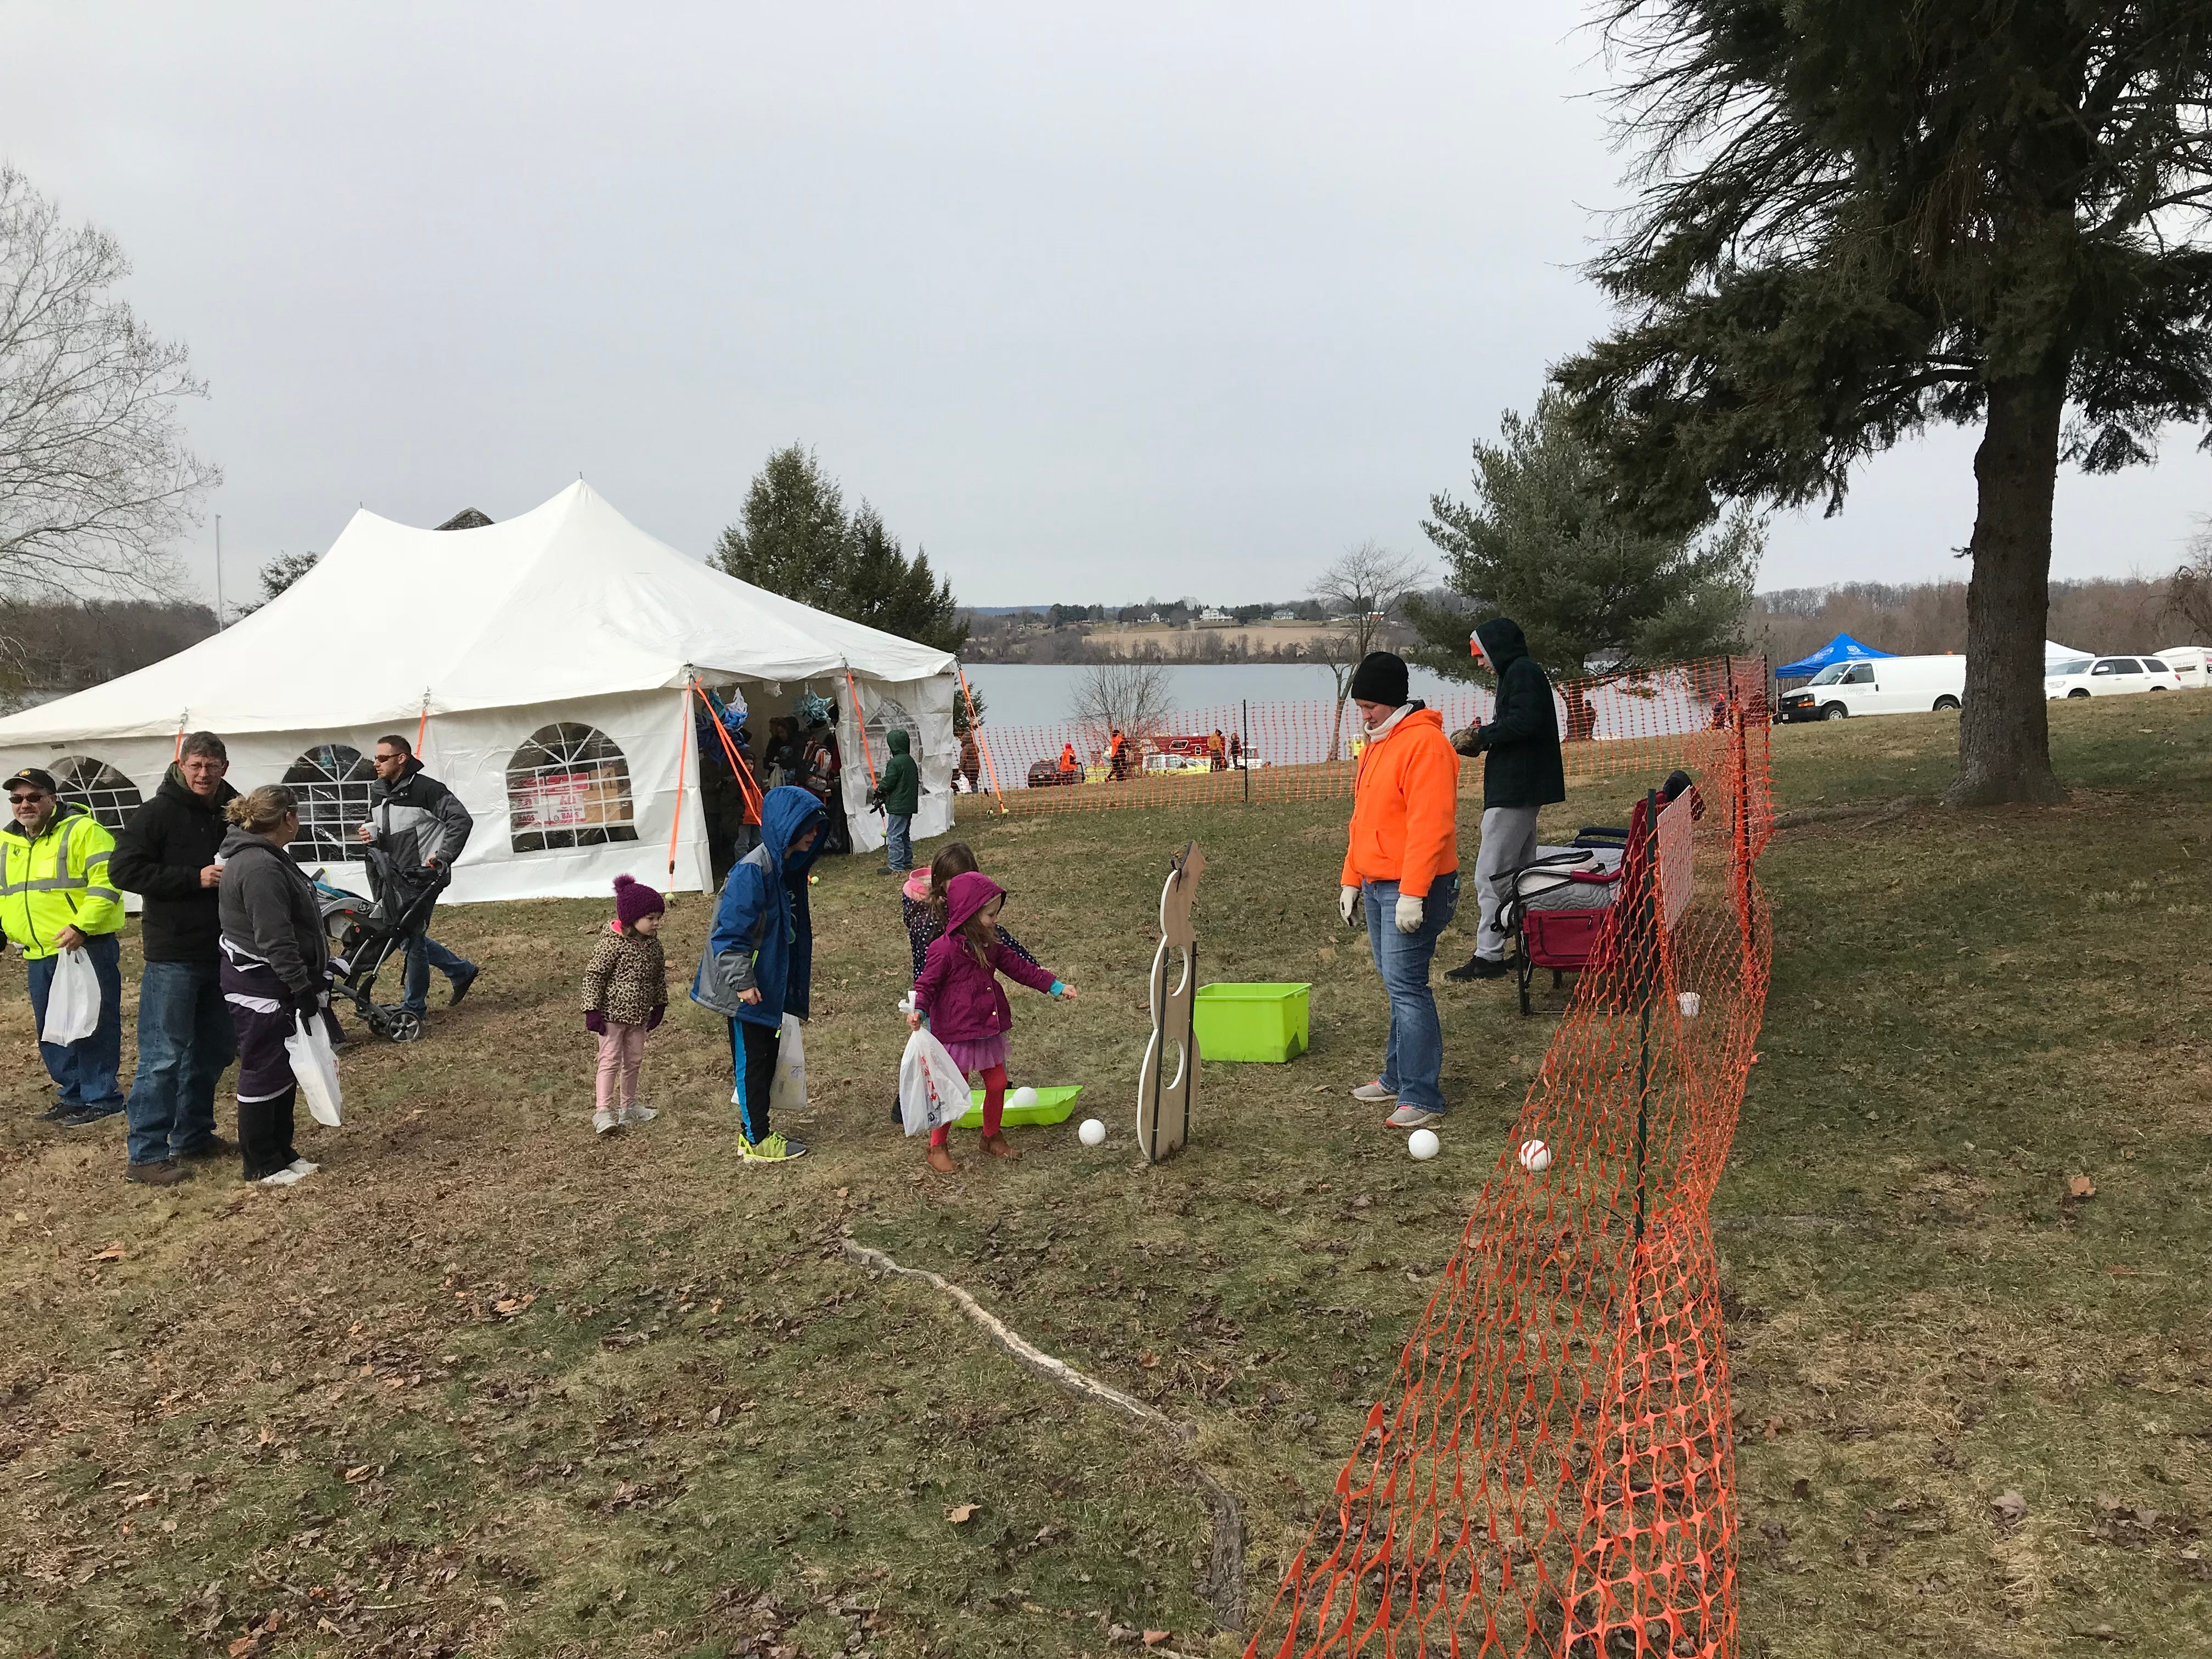 People enjoy the festivities at the annual Codorus Winter Festival at Codorus State Park on January 26, 2019.